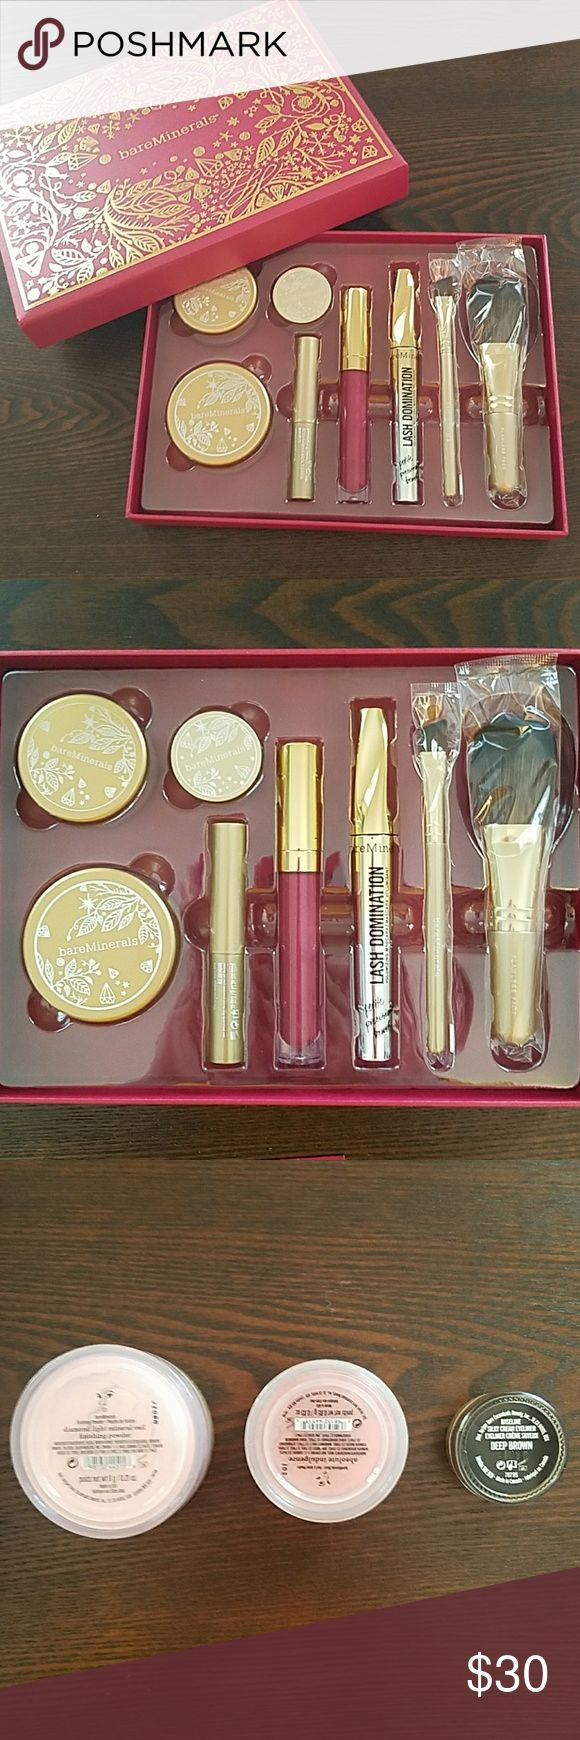 bareMinerals Devine Decadence 8-Piece Collection Brand new in box, never used  Includes- Diamond Light Mineral Veil finishing powder Absolute Indulgence Blush Shadow Quickie Cream Eyeshadow Stick in Pewter Baseline Silky Cream Eyeliner in Deep Brown Lash Domination Volumizing Mascara Petite Precision Brush in Intense Black Marvelous Moxie Lipgloss in Best Dressed Flawless Face Brush Full-Edged Liner Brush  Clean smoke free home bareMinerals Makeup